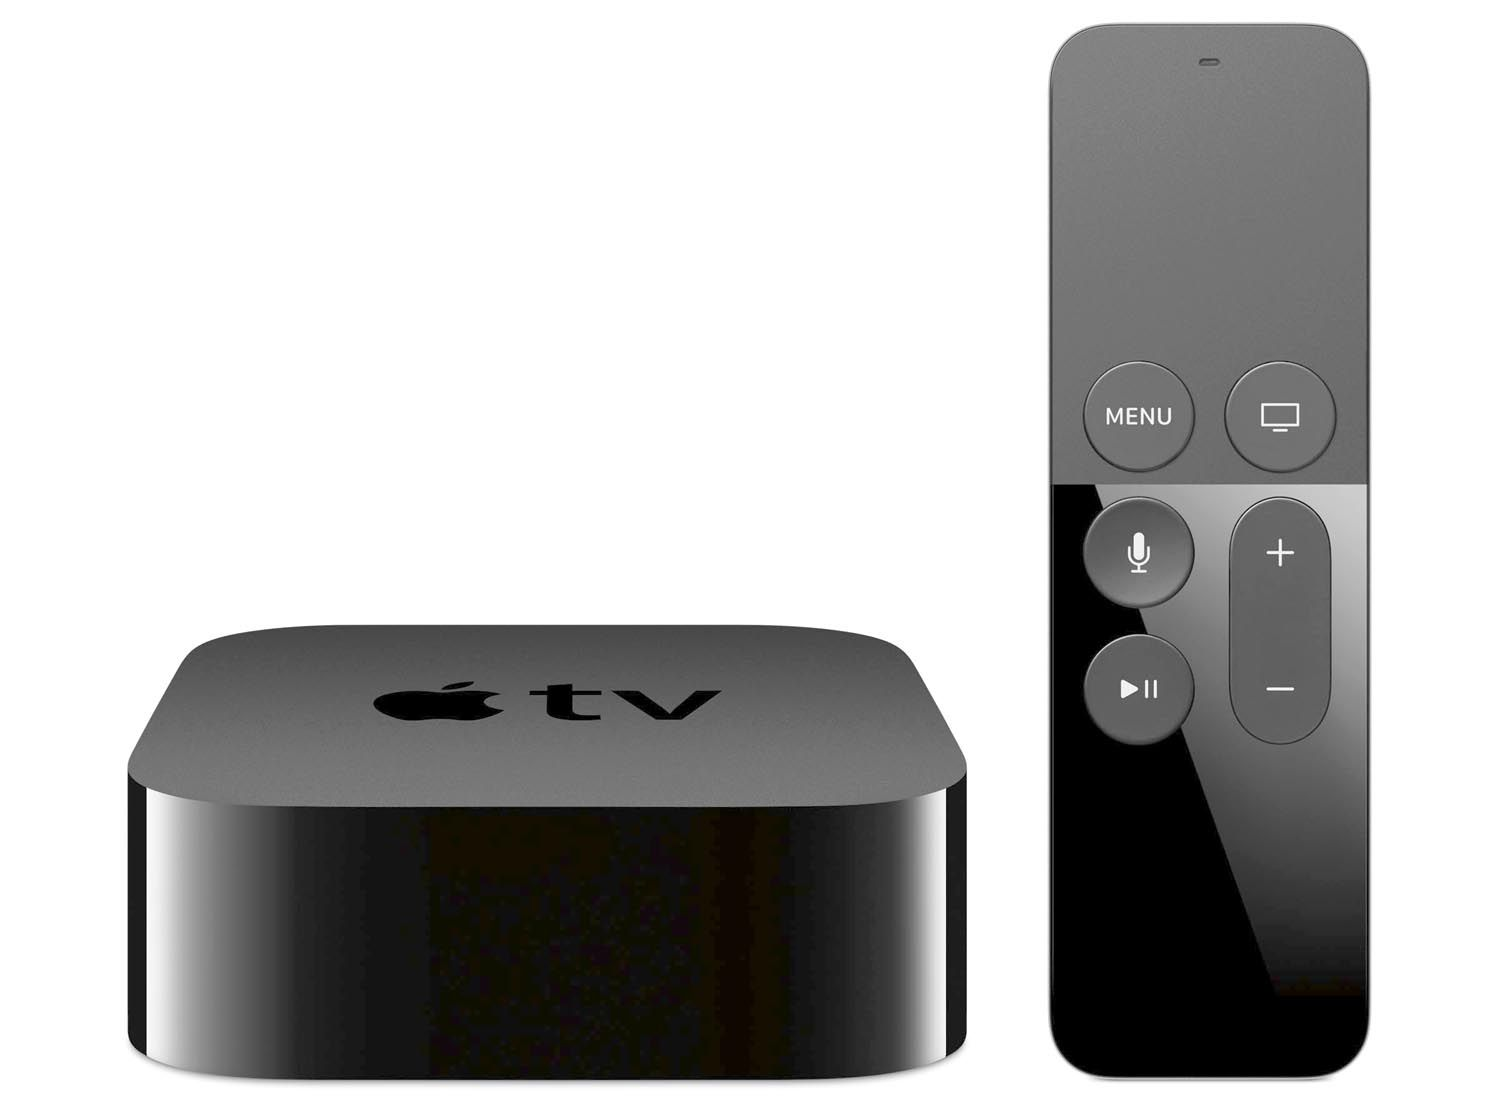 Apple TV and the Siri remote